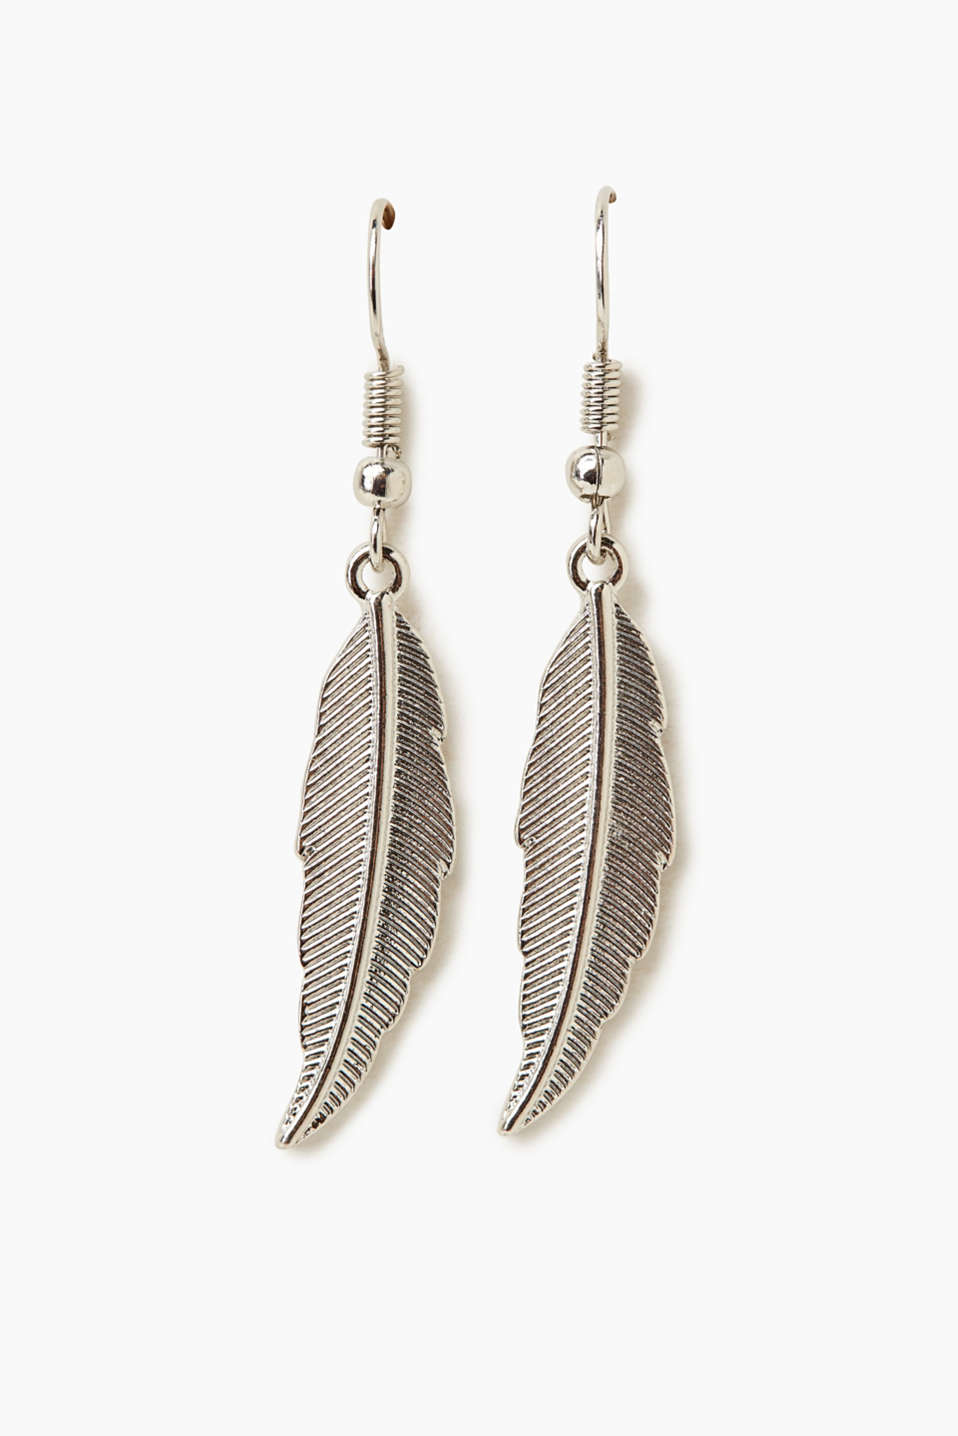 These vertical metal earrings in a feather shape exude pure lightness!